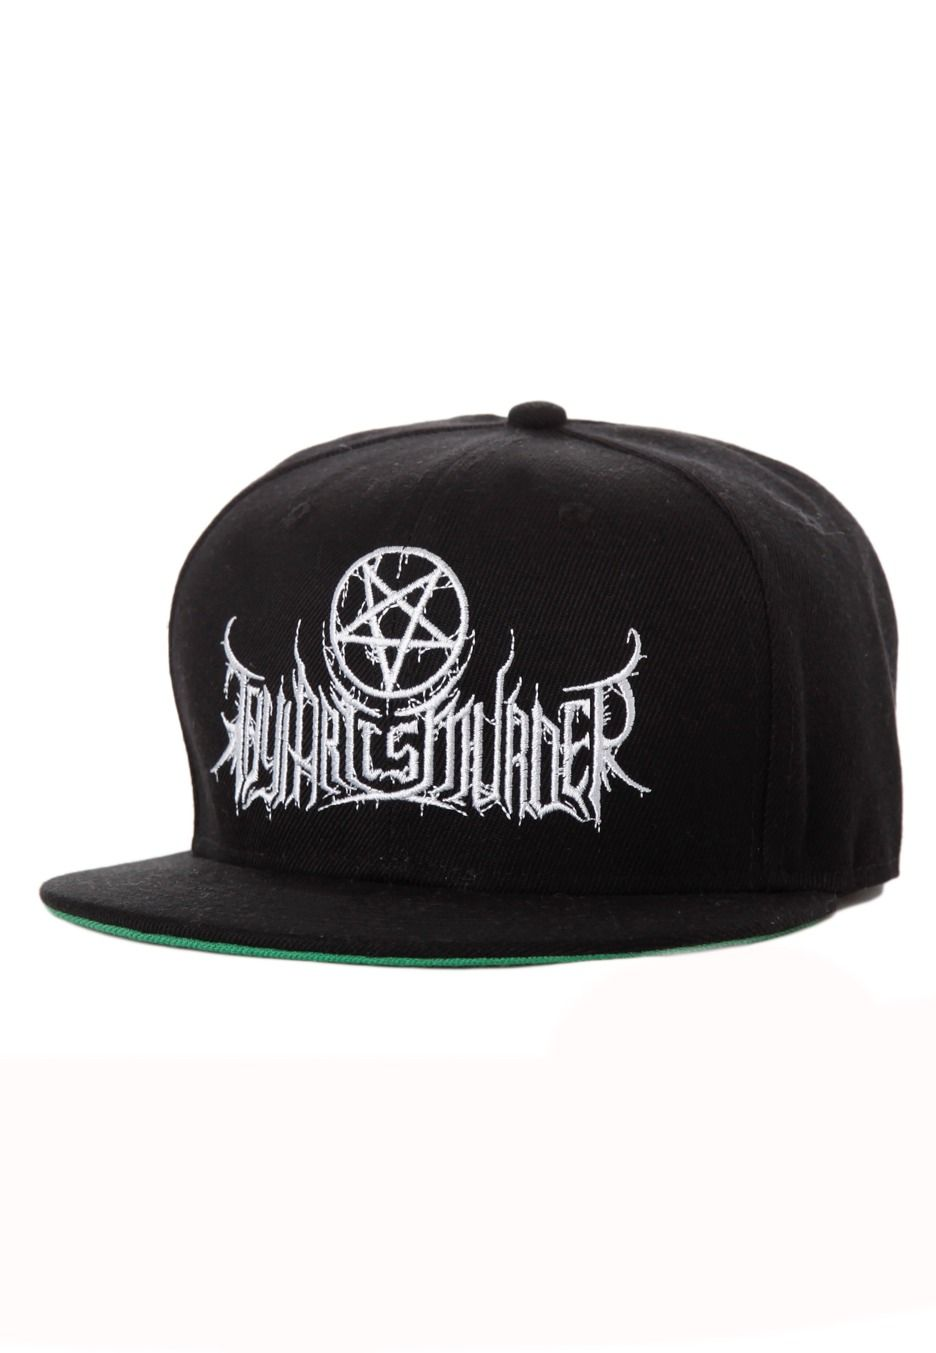 1da670f764a Thy Art Is Murder - Logo Snapback - Cap - Official Deathcore Merchandise  Online Shop - Impericon.com Worldwide